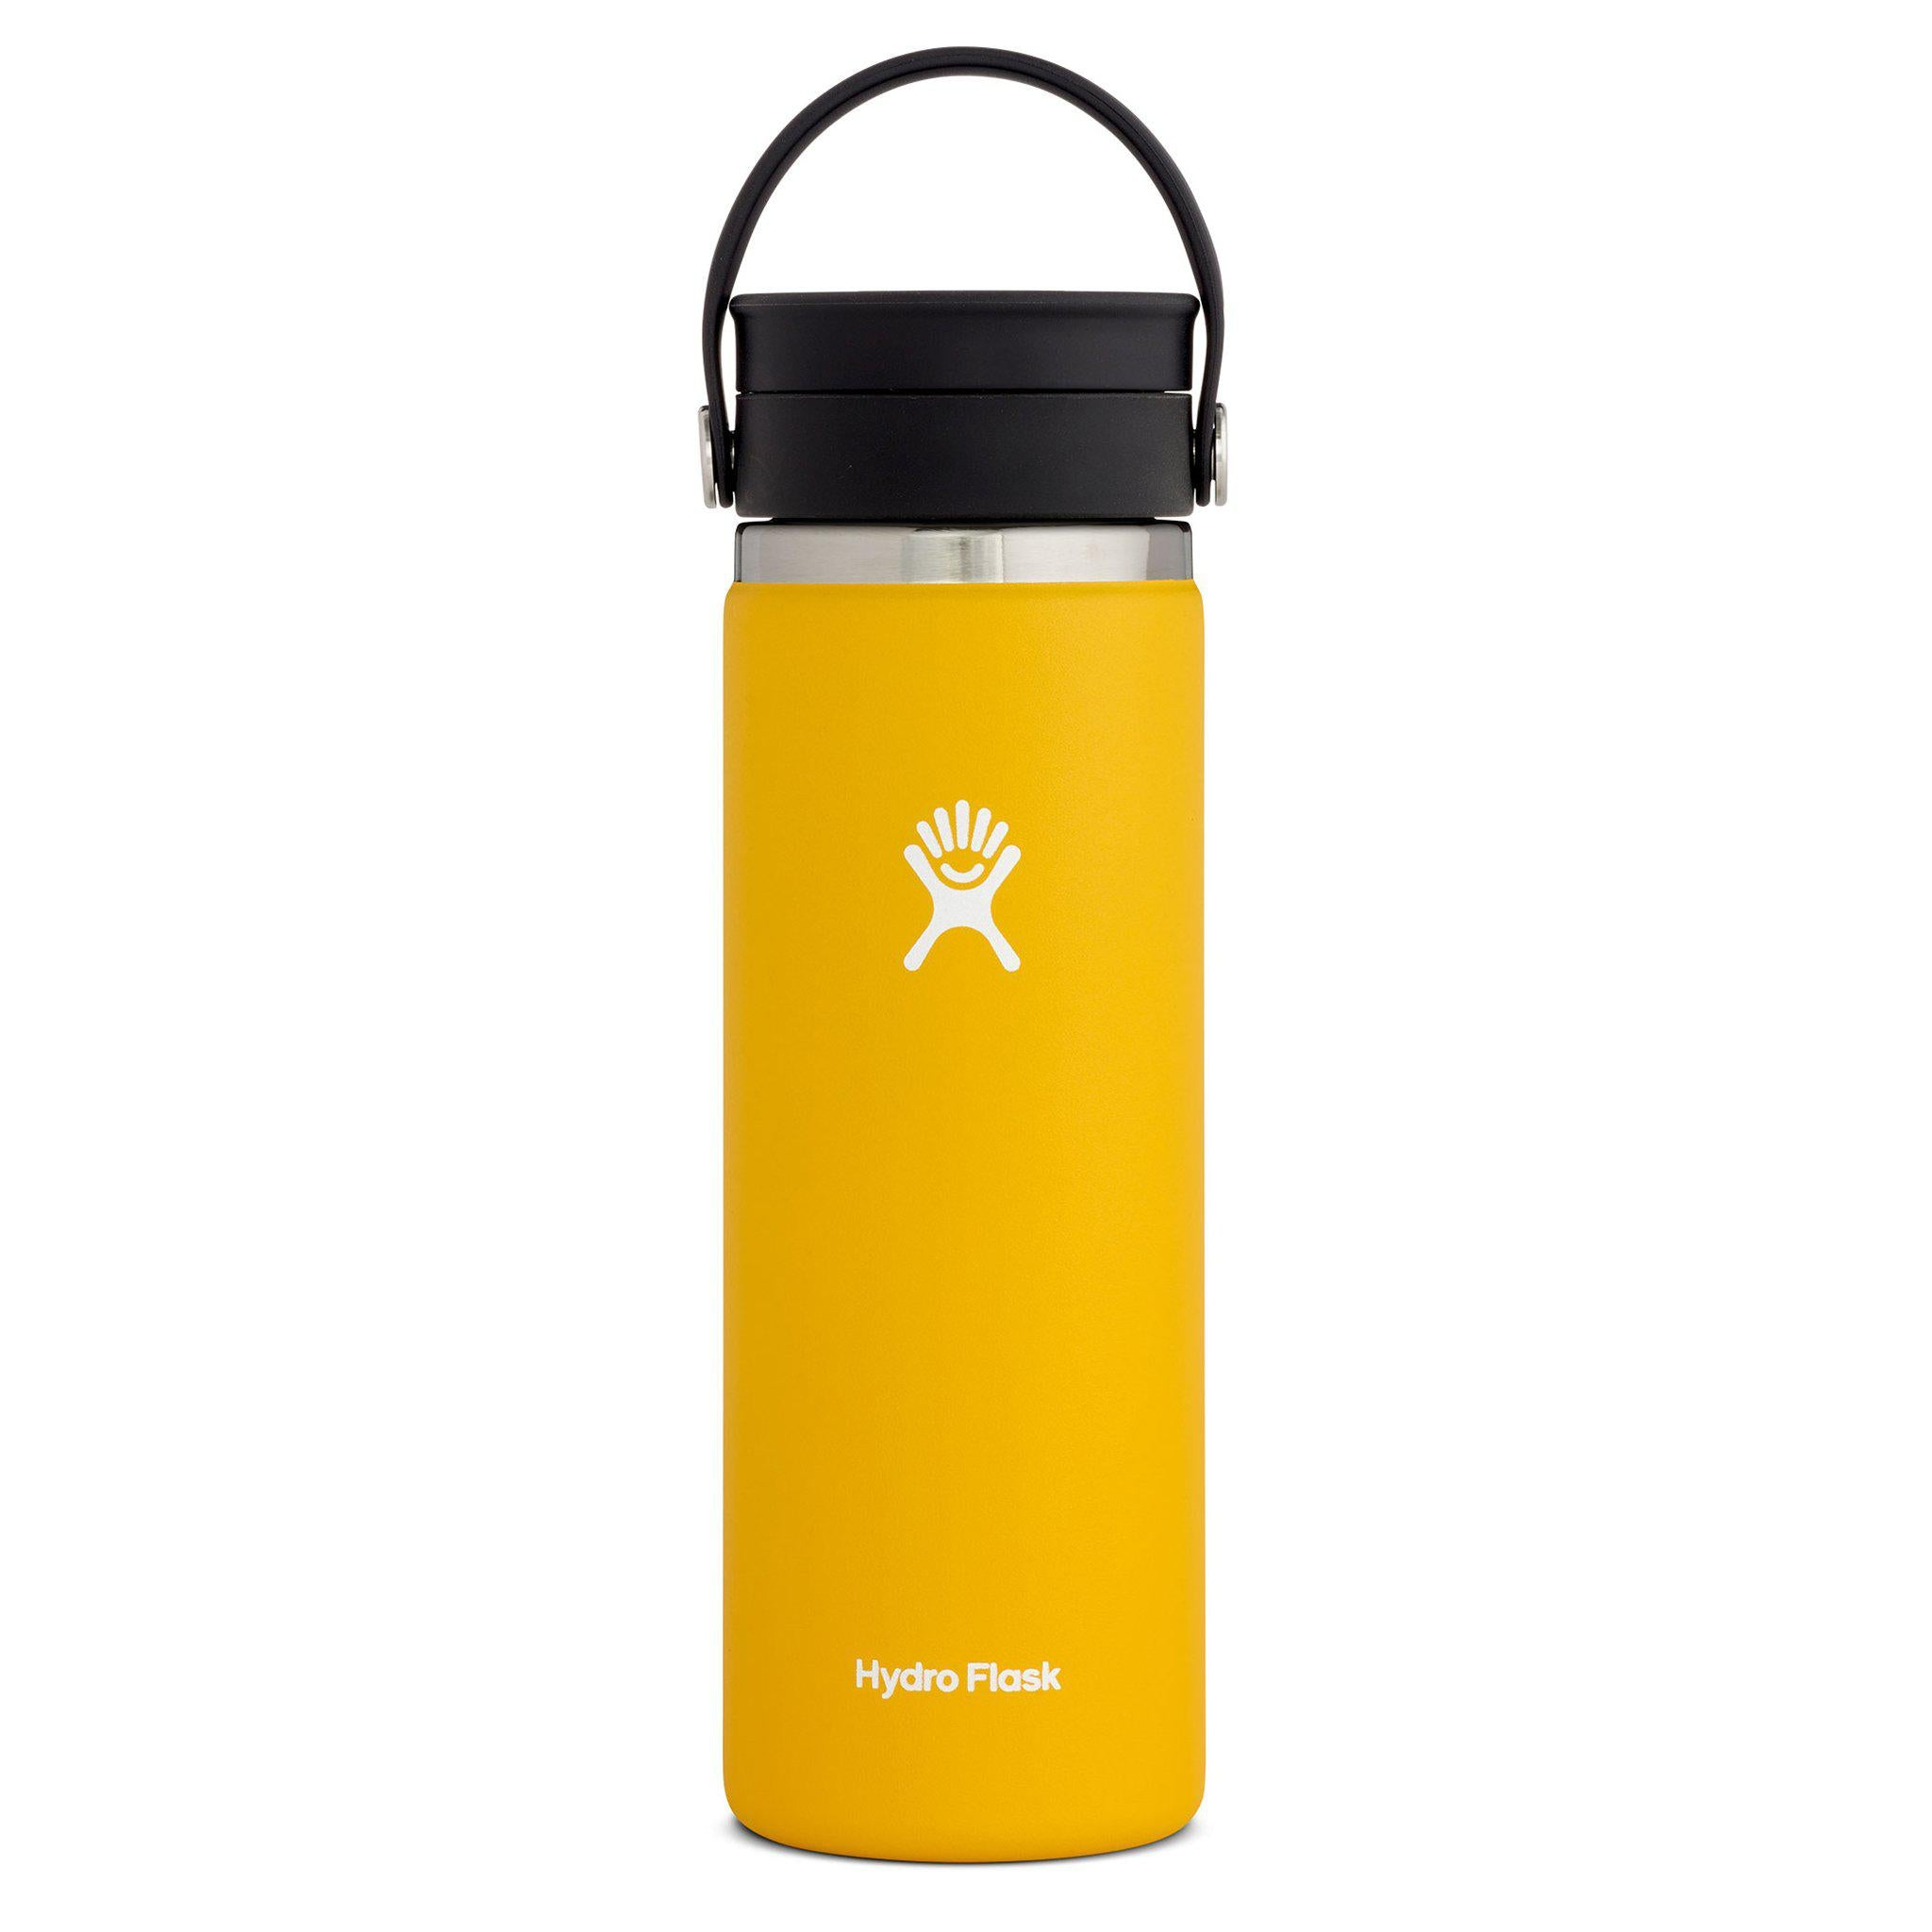 Hydro Flask 20oz Wide Mouth Coffee Flask